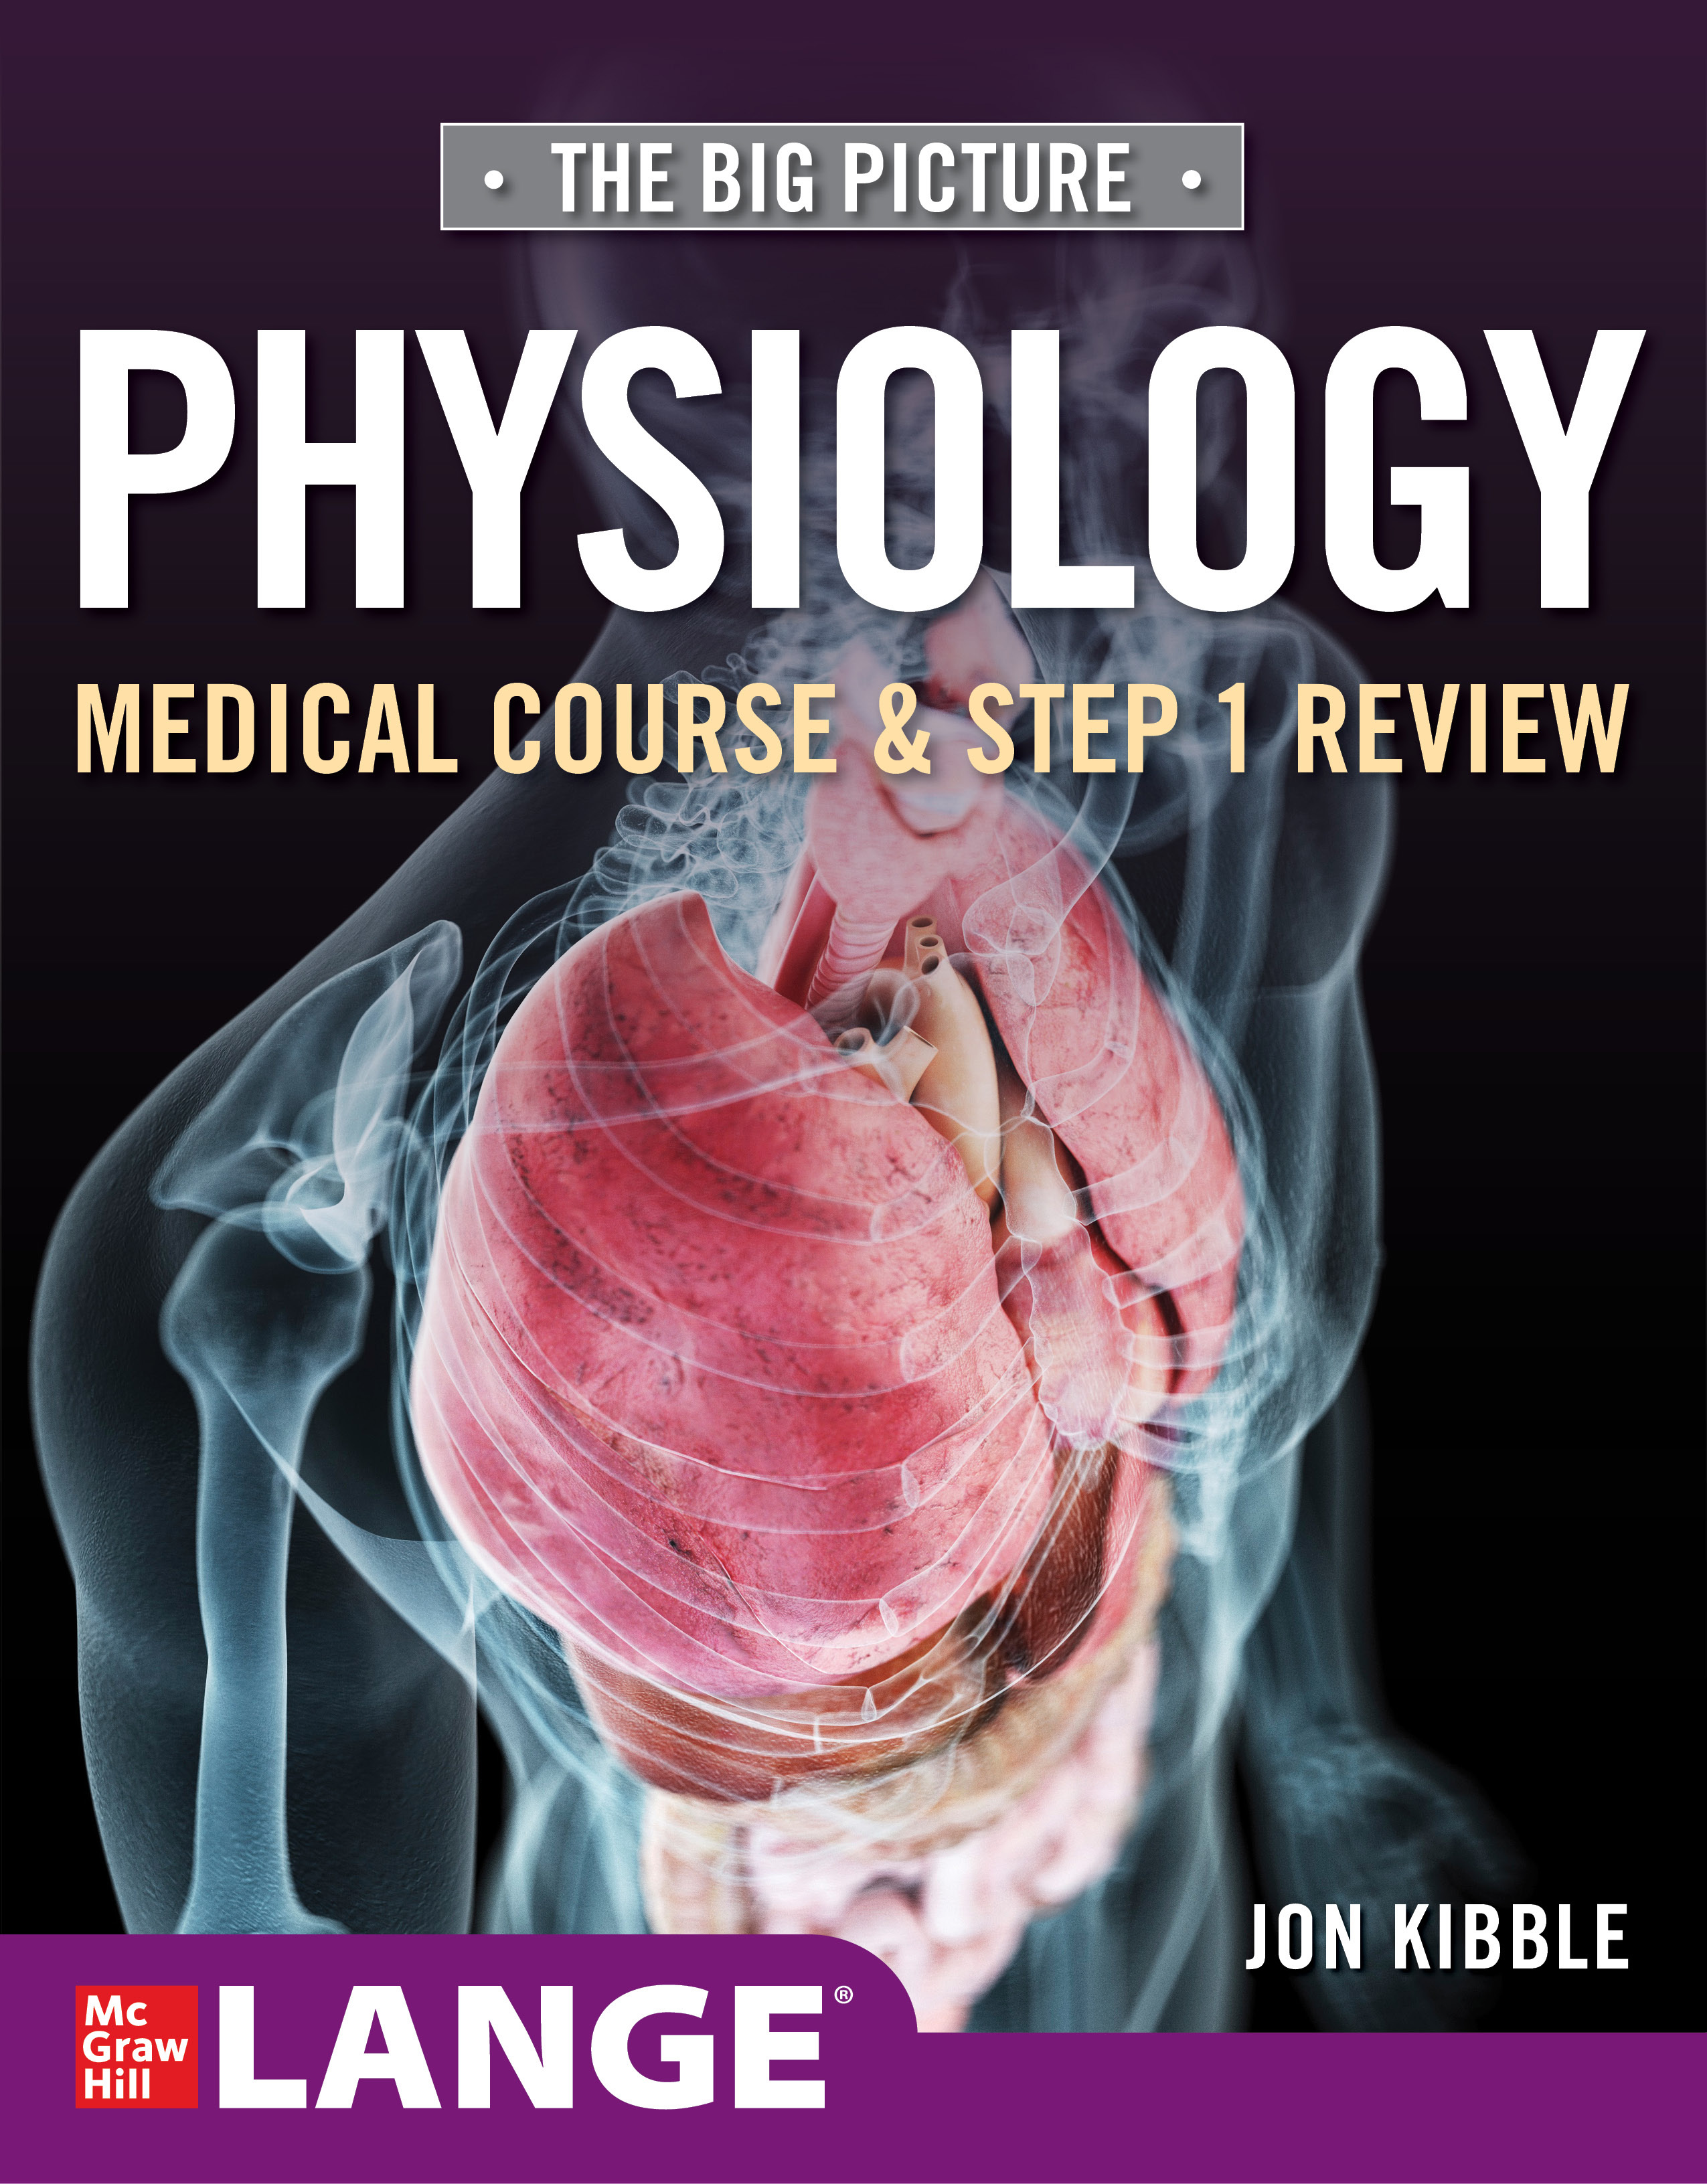 The big picture physiology: medical course & step 1 review [electronic resource]